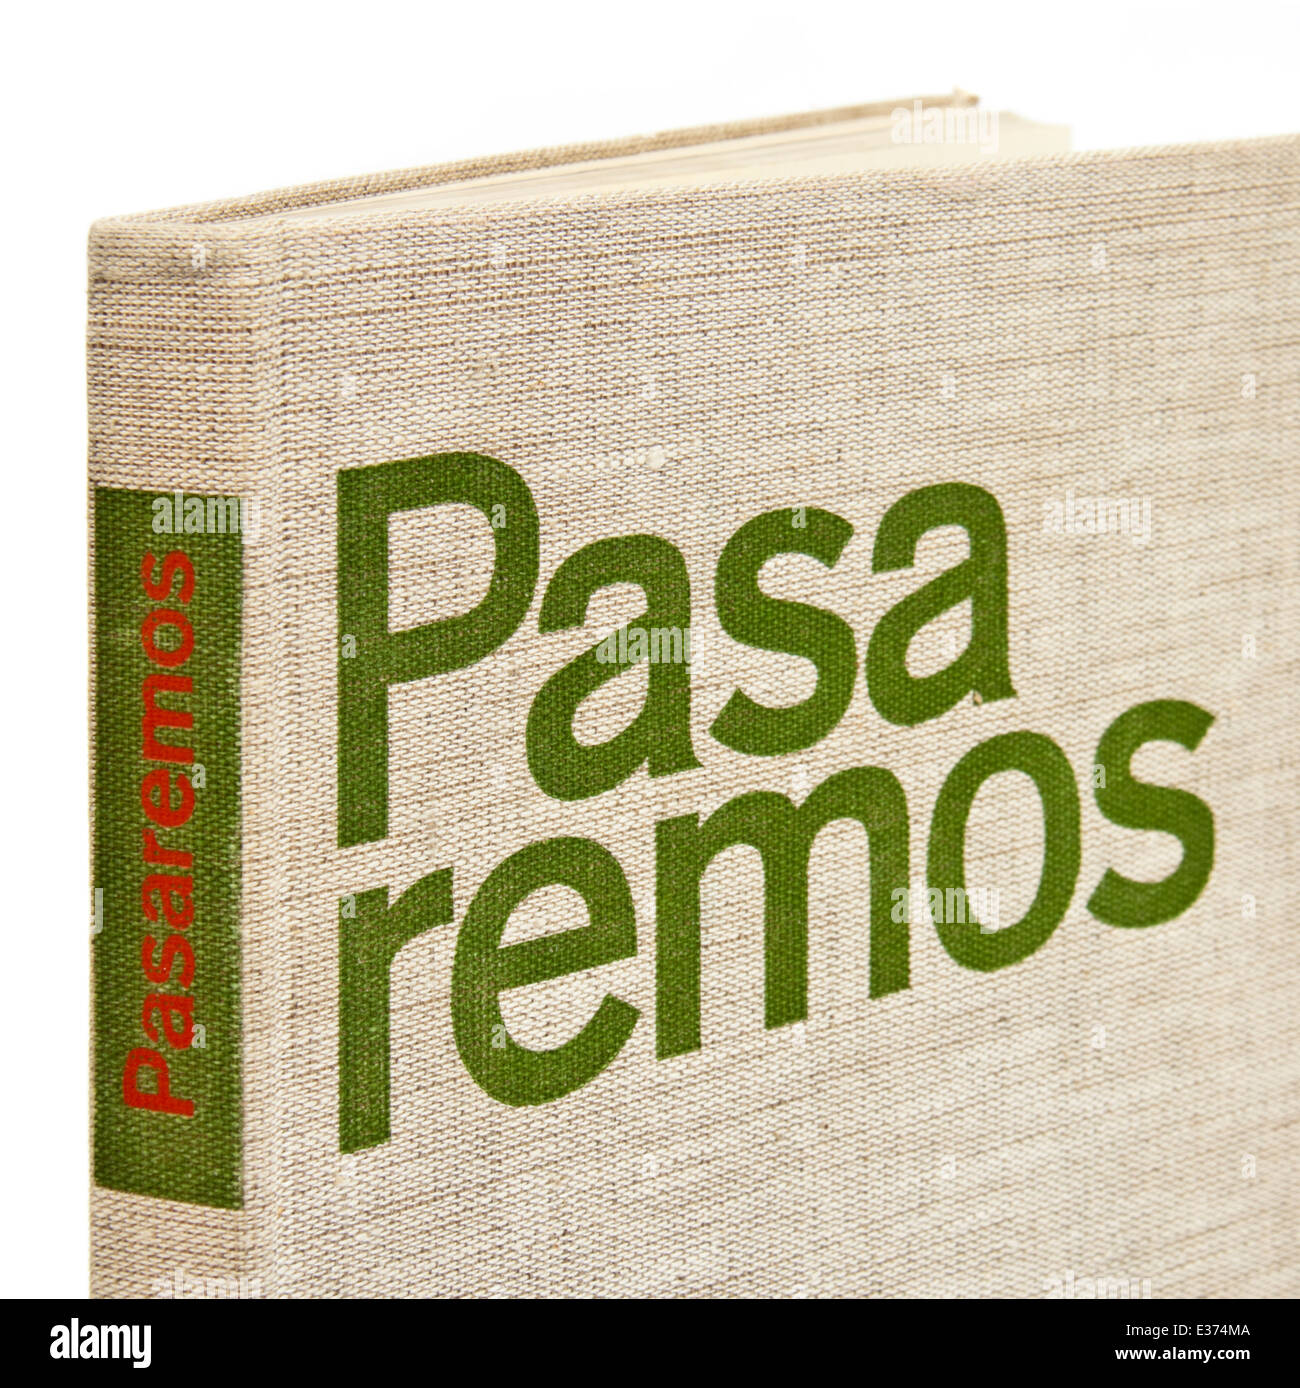 'Pasaremos' (We Shall Pass), a rare book about the Communist Brigades who fought in the Spanish Civil War. - Stock Image